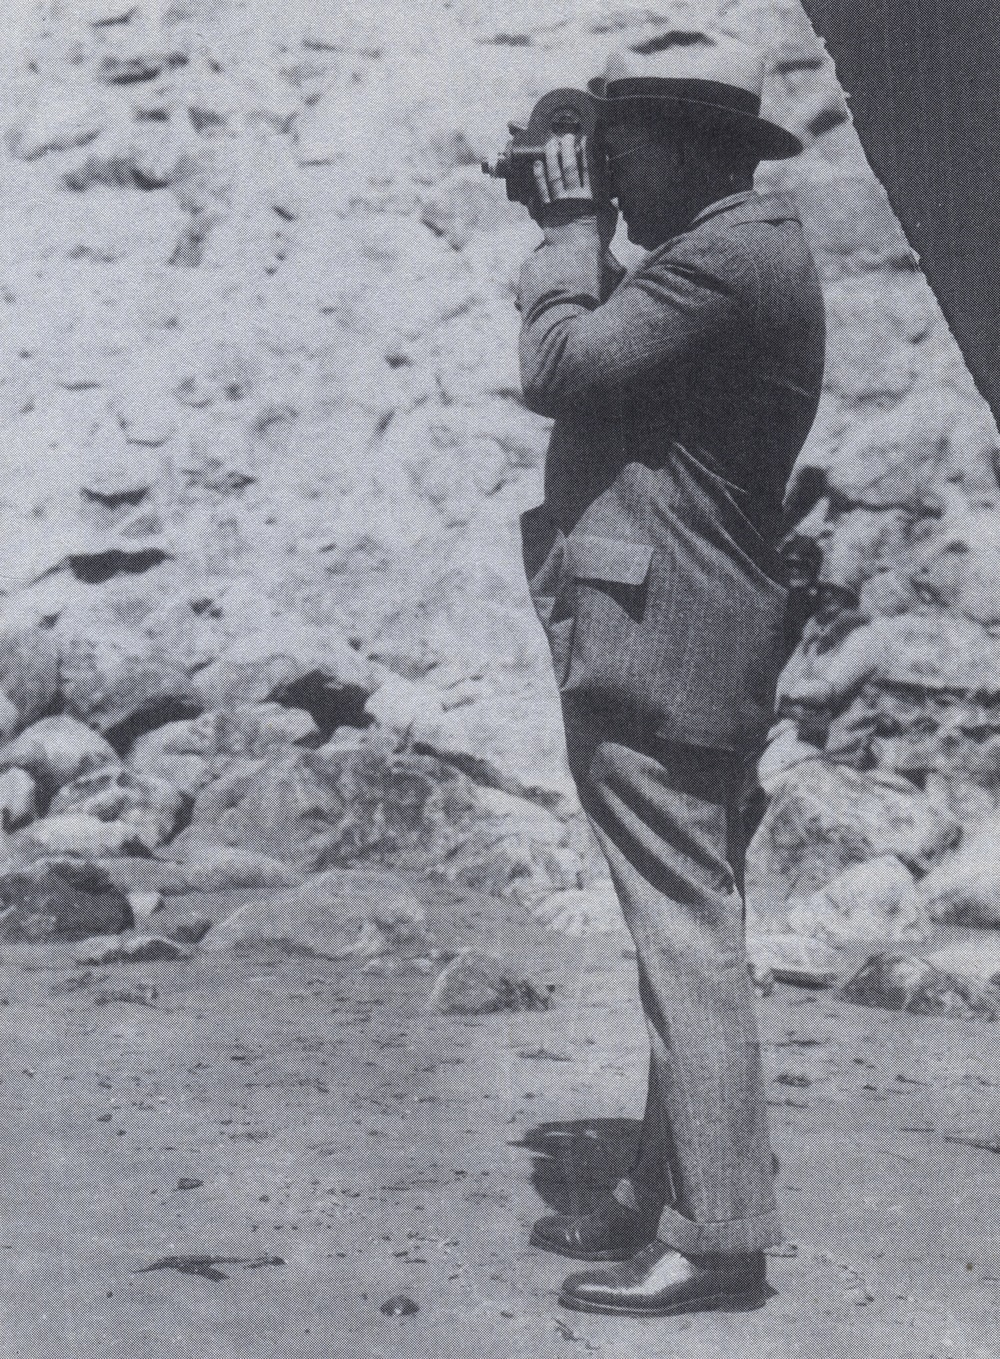 Click photo to download. Caption: Isaiah Bowman surveying a site in Peru in 1941. Credit: Courtesy of The David S. Wyman Institute for Holocaust Studies.